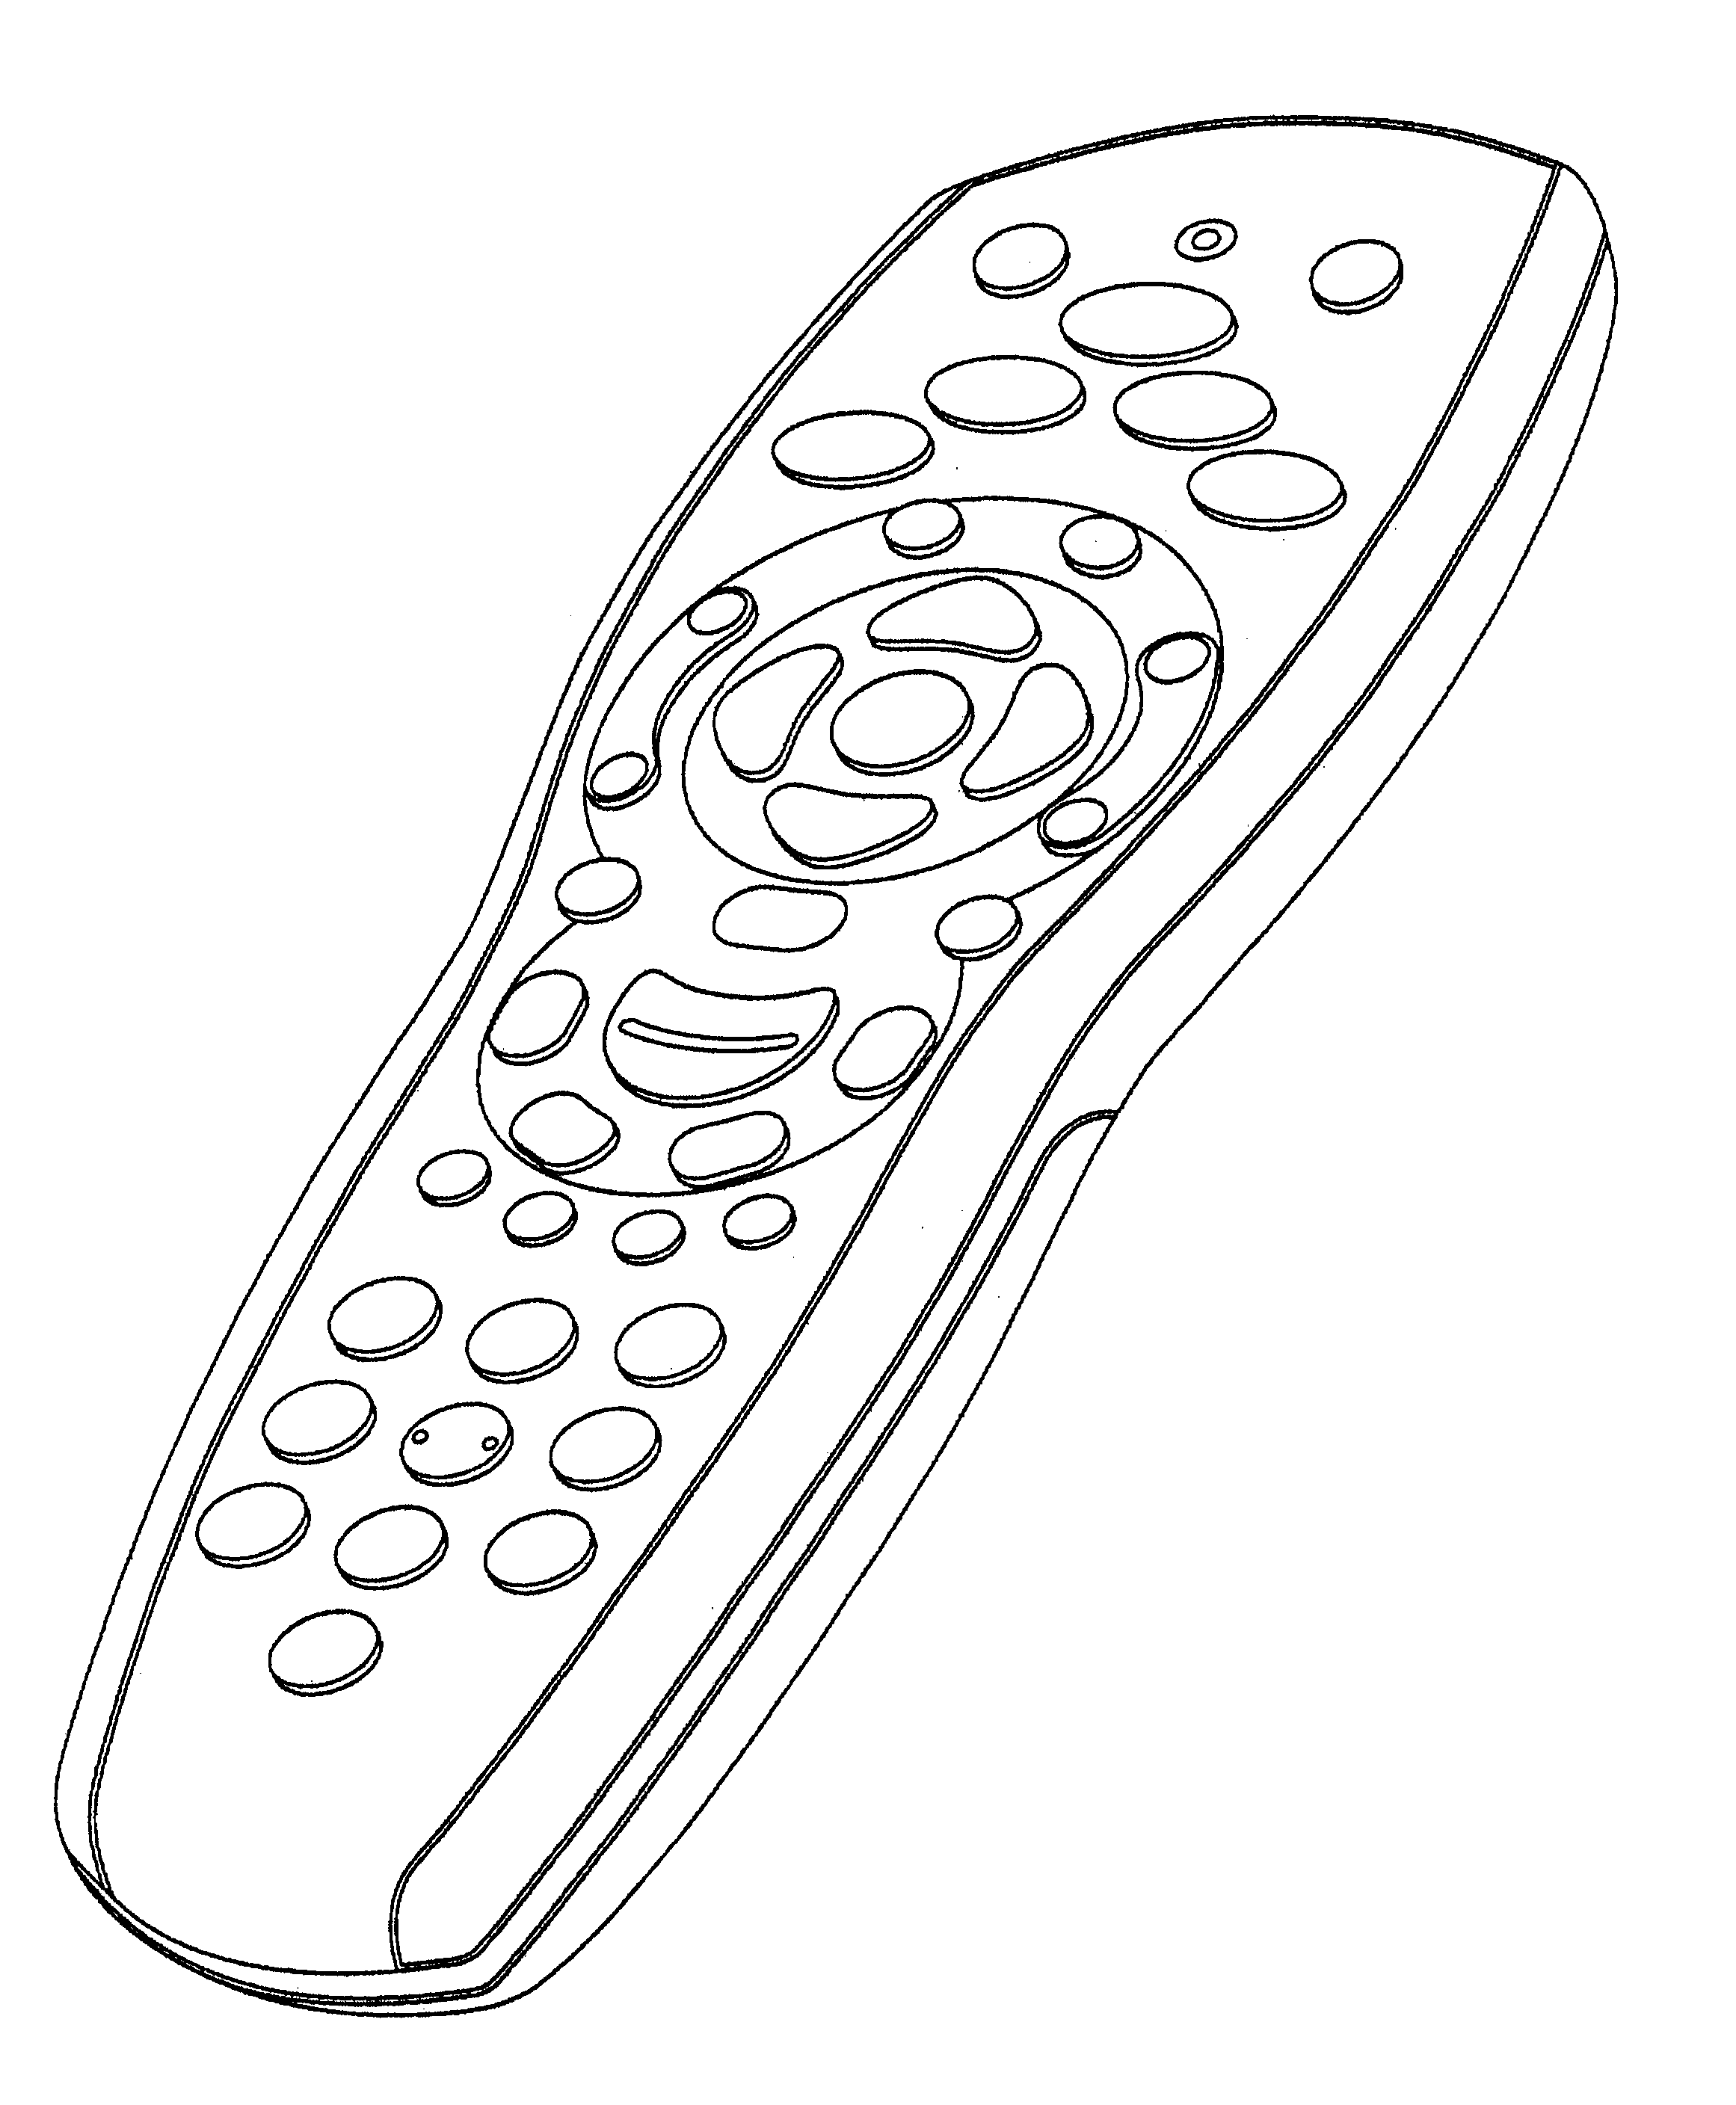 remote control drawing. patent drawing remote control m